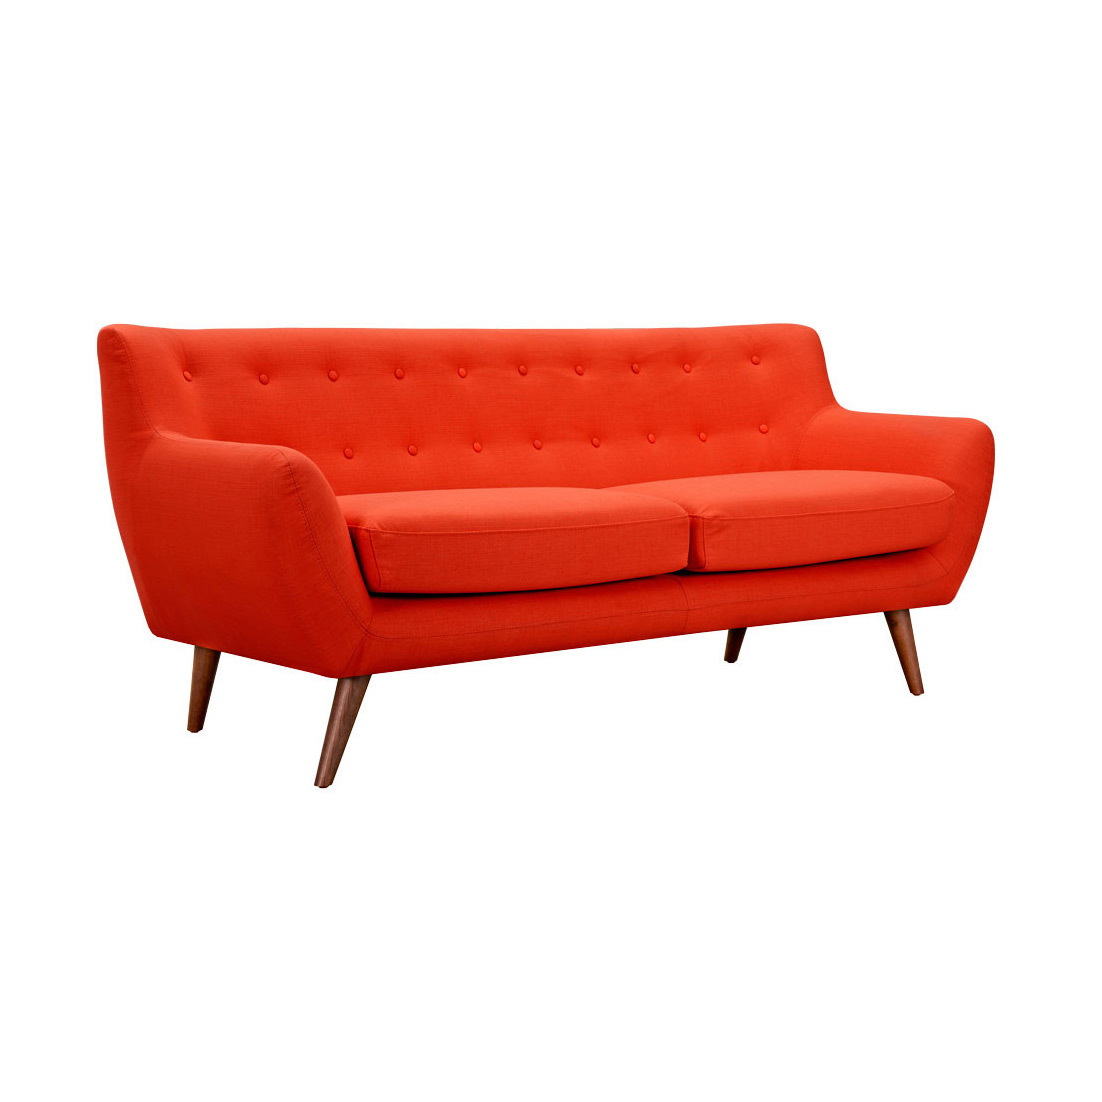 Sofa Orange Olson Sofa In Orange Harry 39s Used Furniture